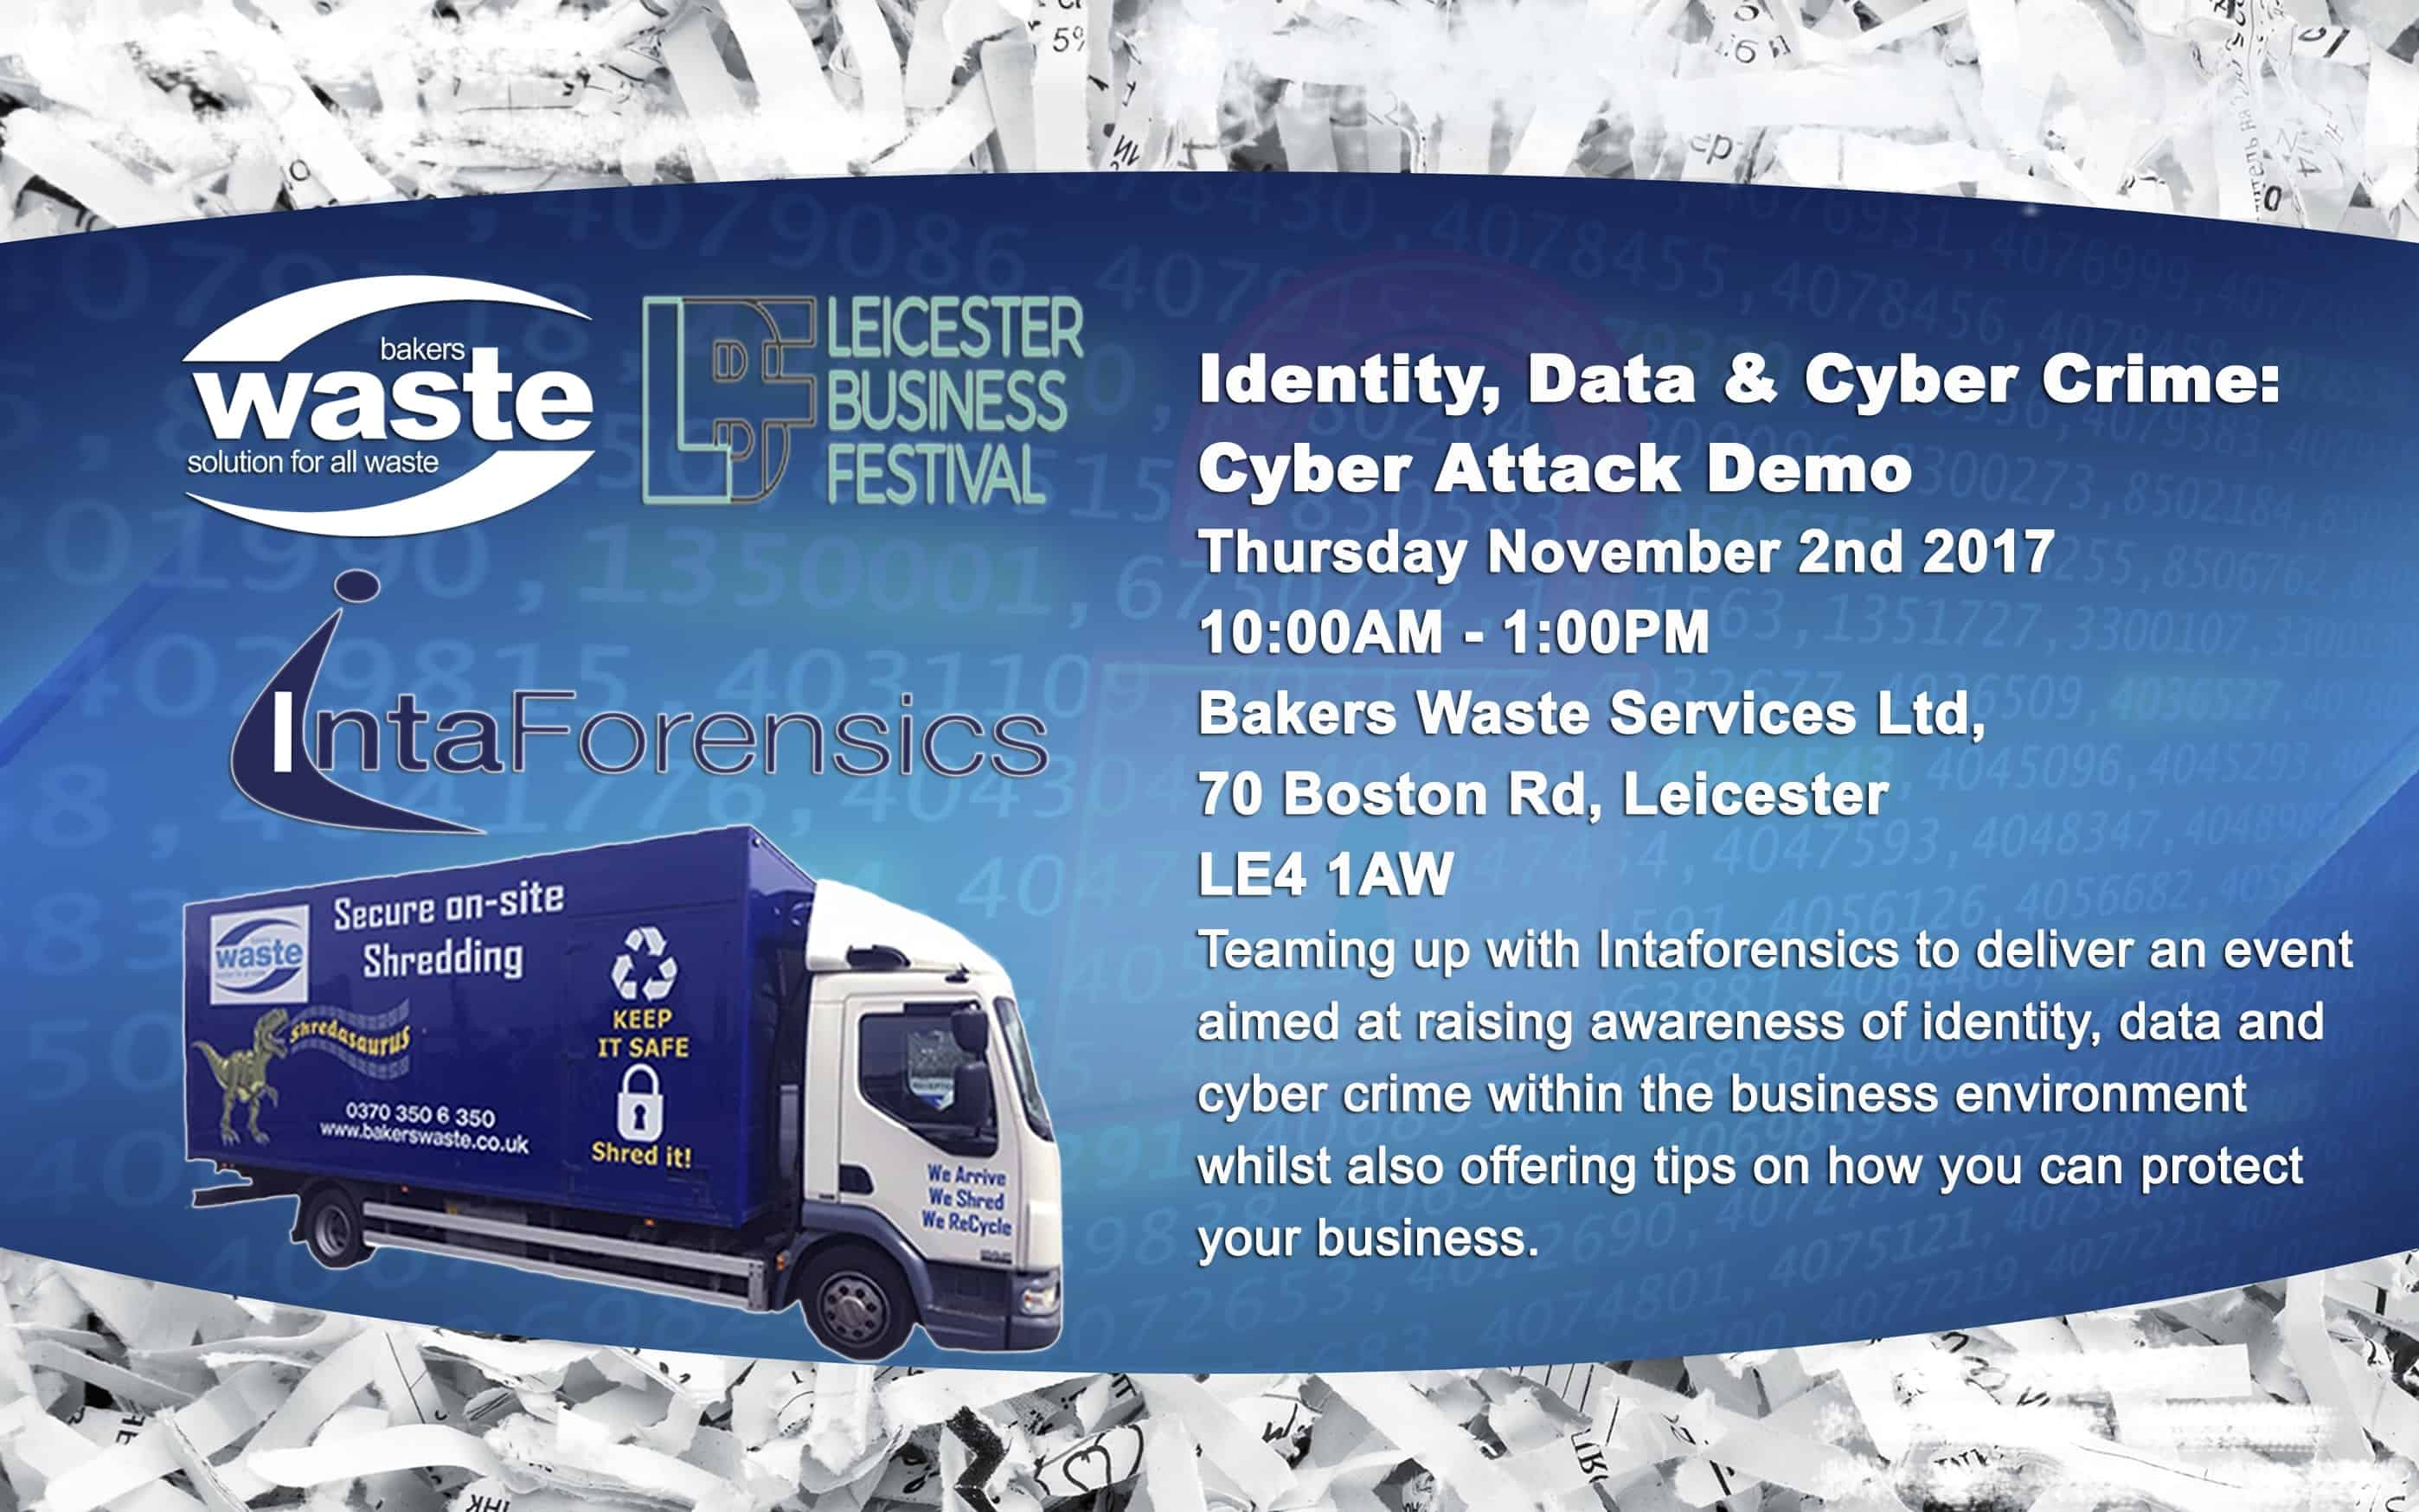 Bakers Waste & Intaforensics